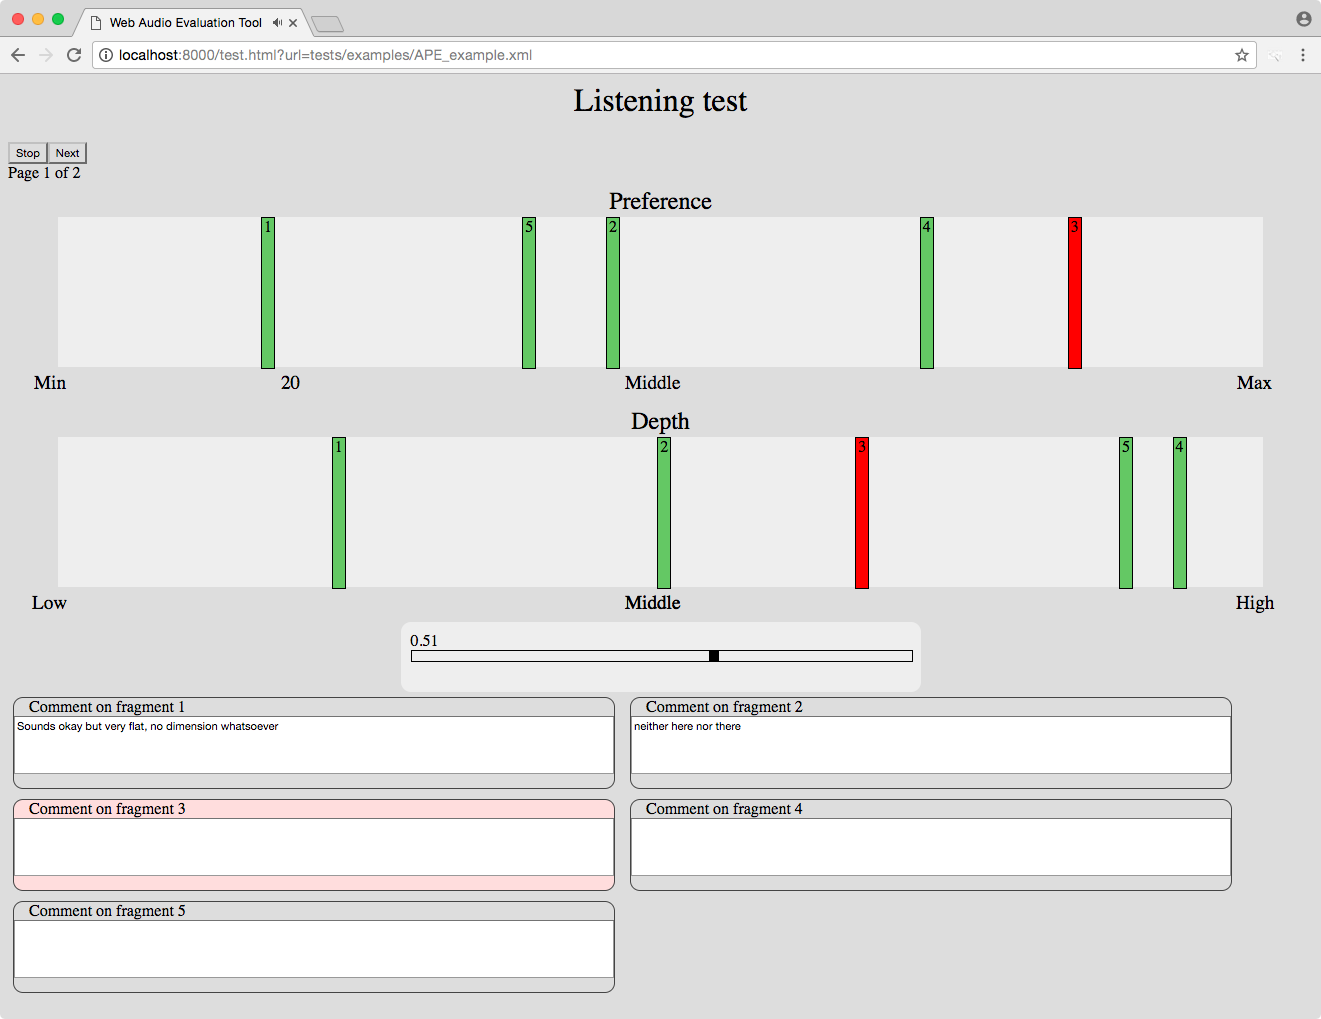 Interfaces Brechtdeman Webaudioevaluationtool Wiki Github Abx Double Blind Audio Tester Discrete Each Element Is Given A Set Of Values Based On The Number Slider Options Specified For Instance Likert Specifies 5 And